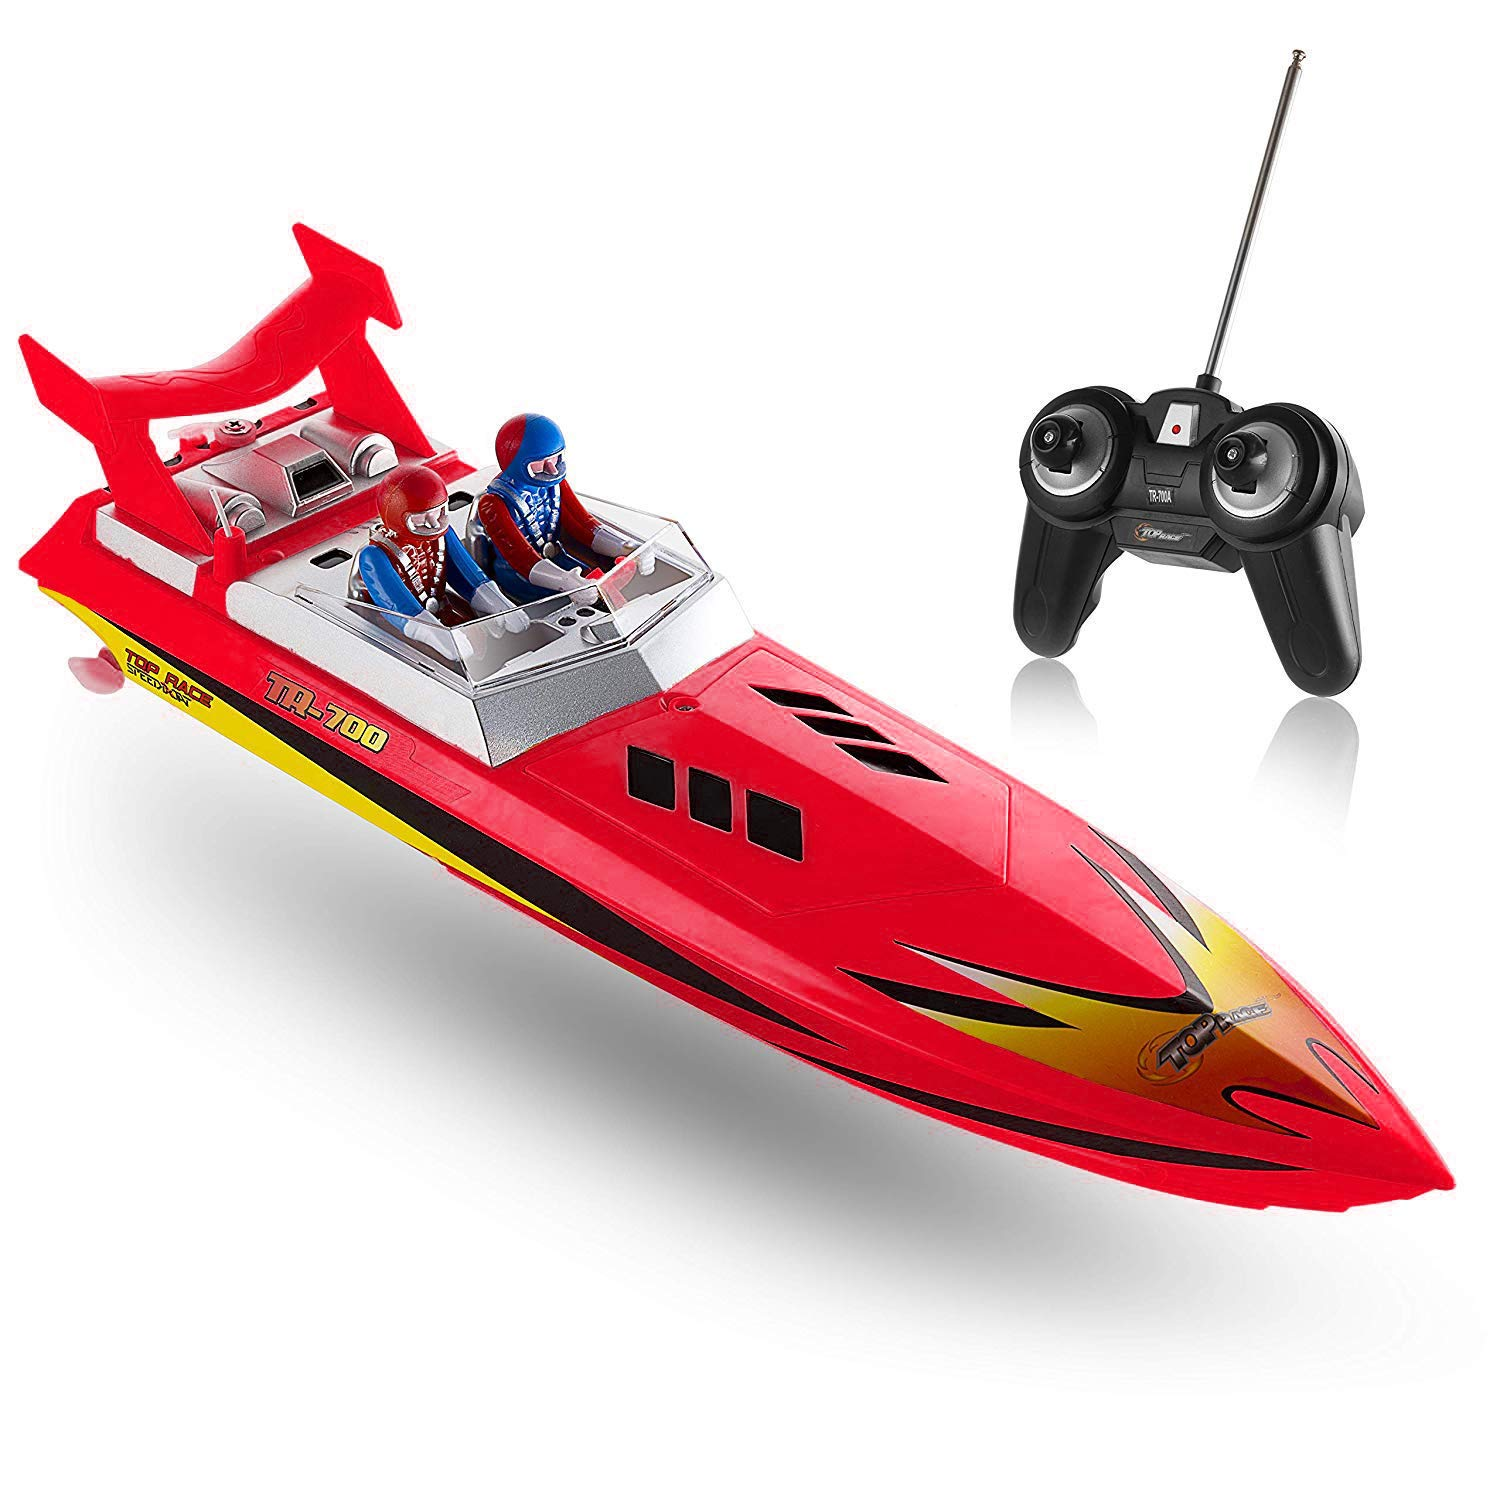 Top Race Remote Control Water Speed Boat, RC Boat for Kids, Perfect Toy for Pools and Lakes 8 MPH (Red)